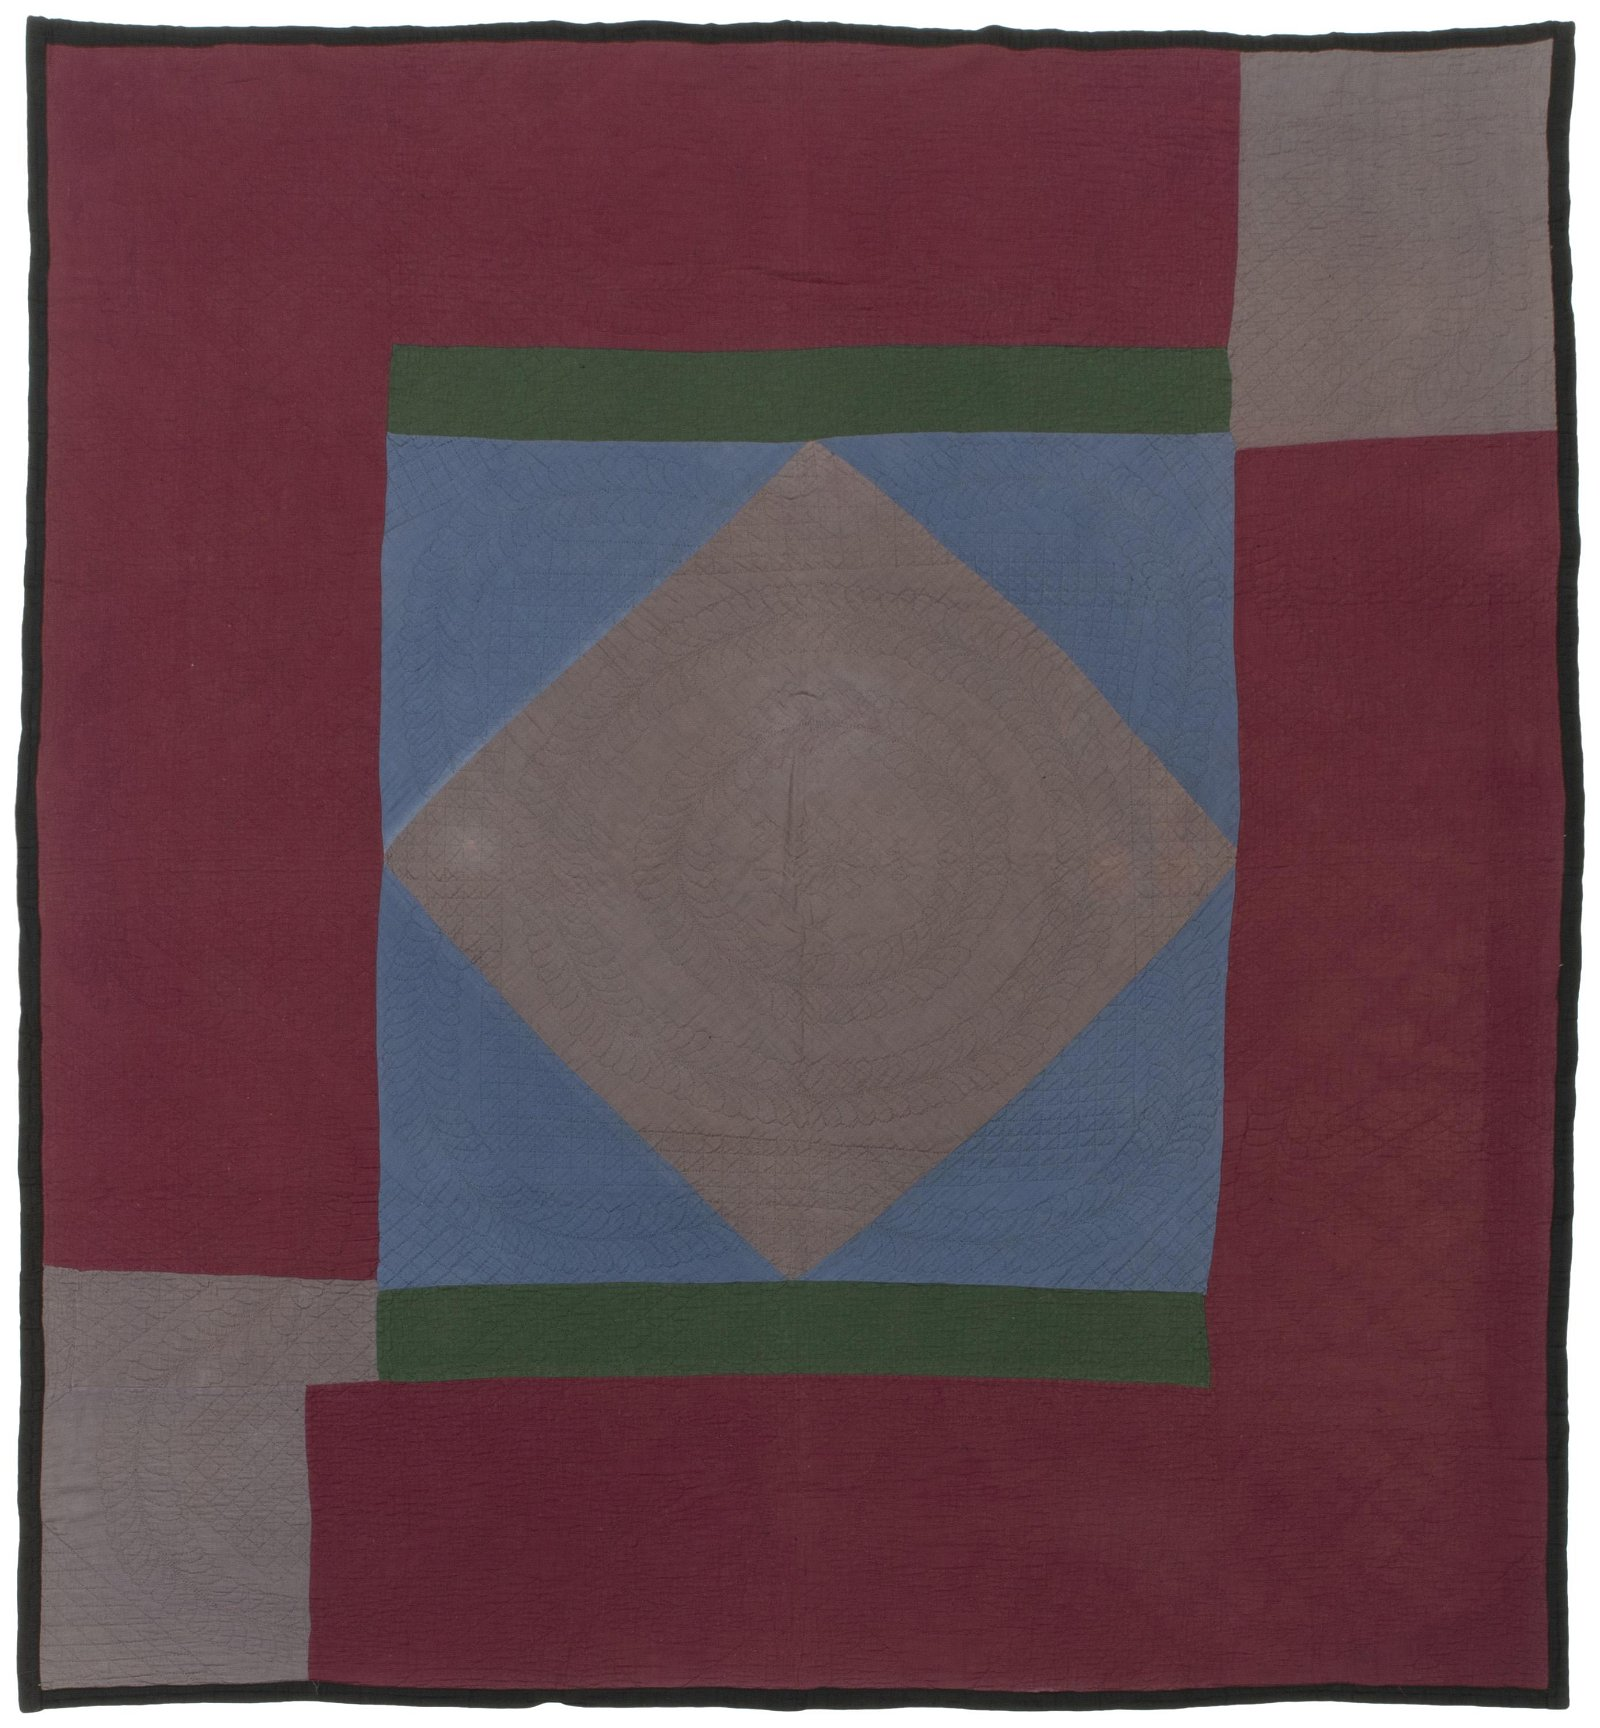 An Amish Diamond in the Square quilt